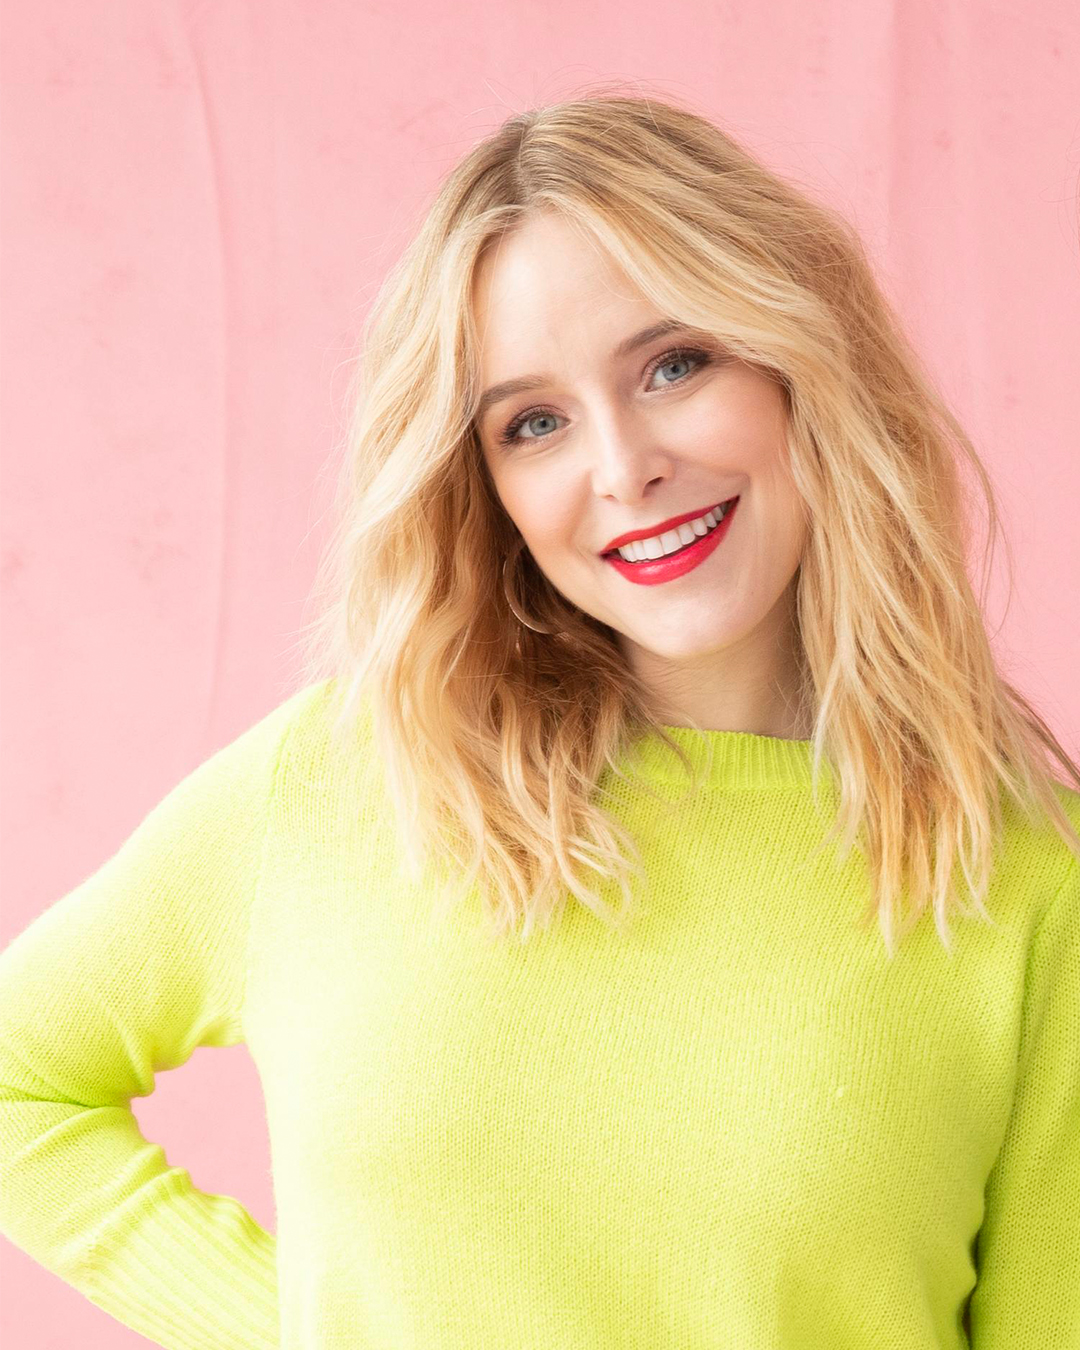 Jenny Mollen headshot wearing neon yellow sweater against pink backdrop